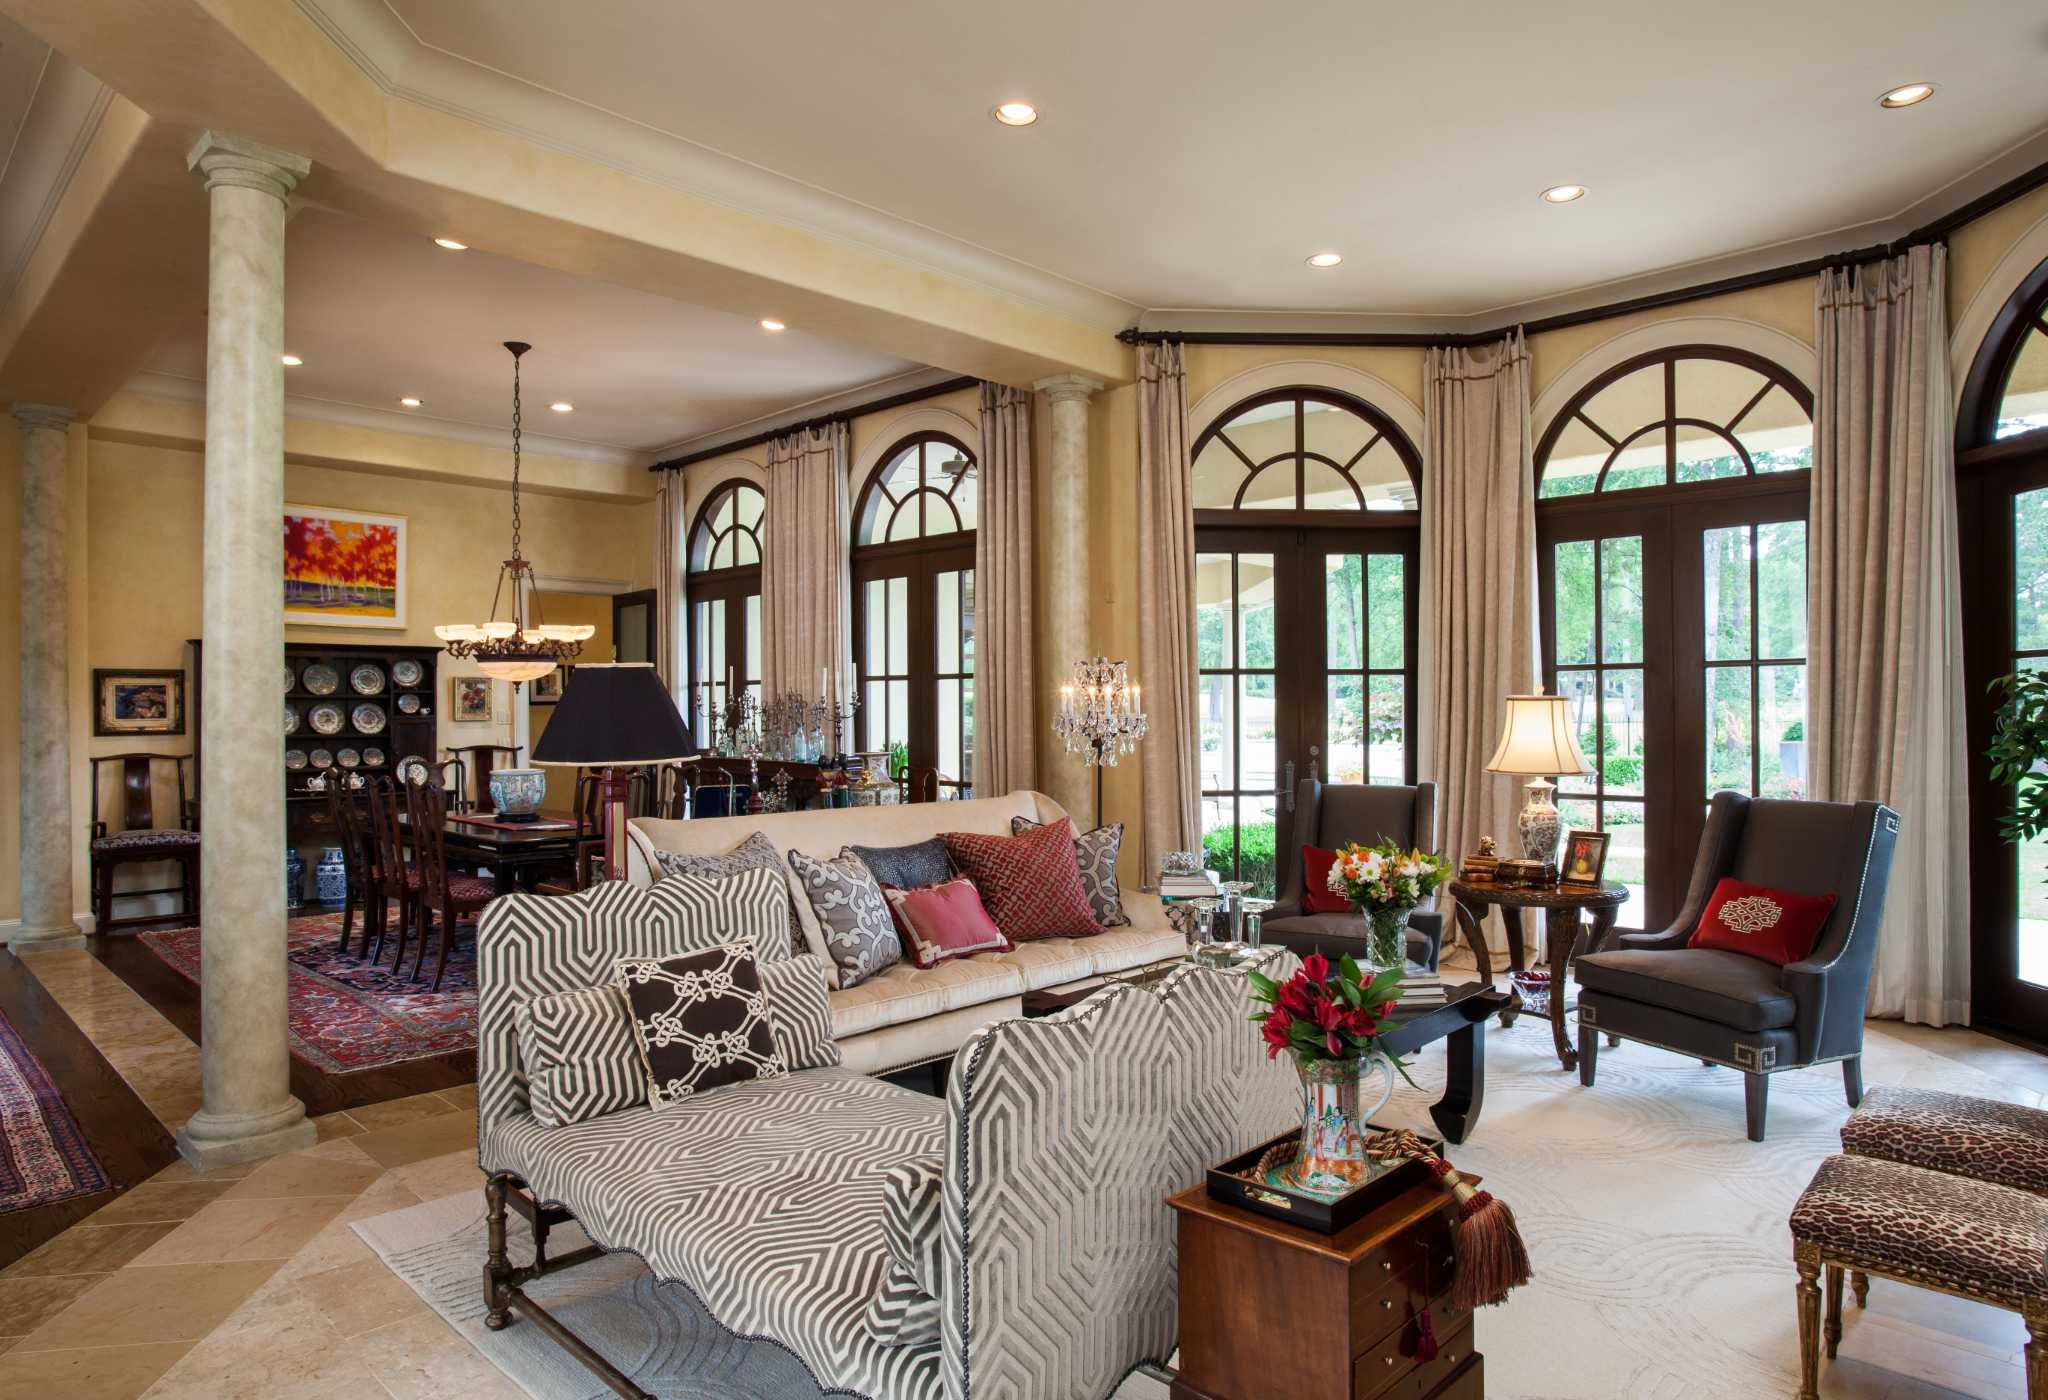 A Total Redesign For A Coupleu0027s 7,800 Square Foot Woodlands Home   Houston  Chronicle